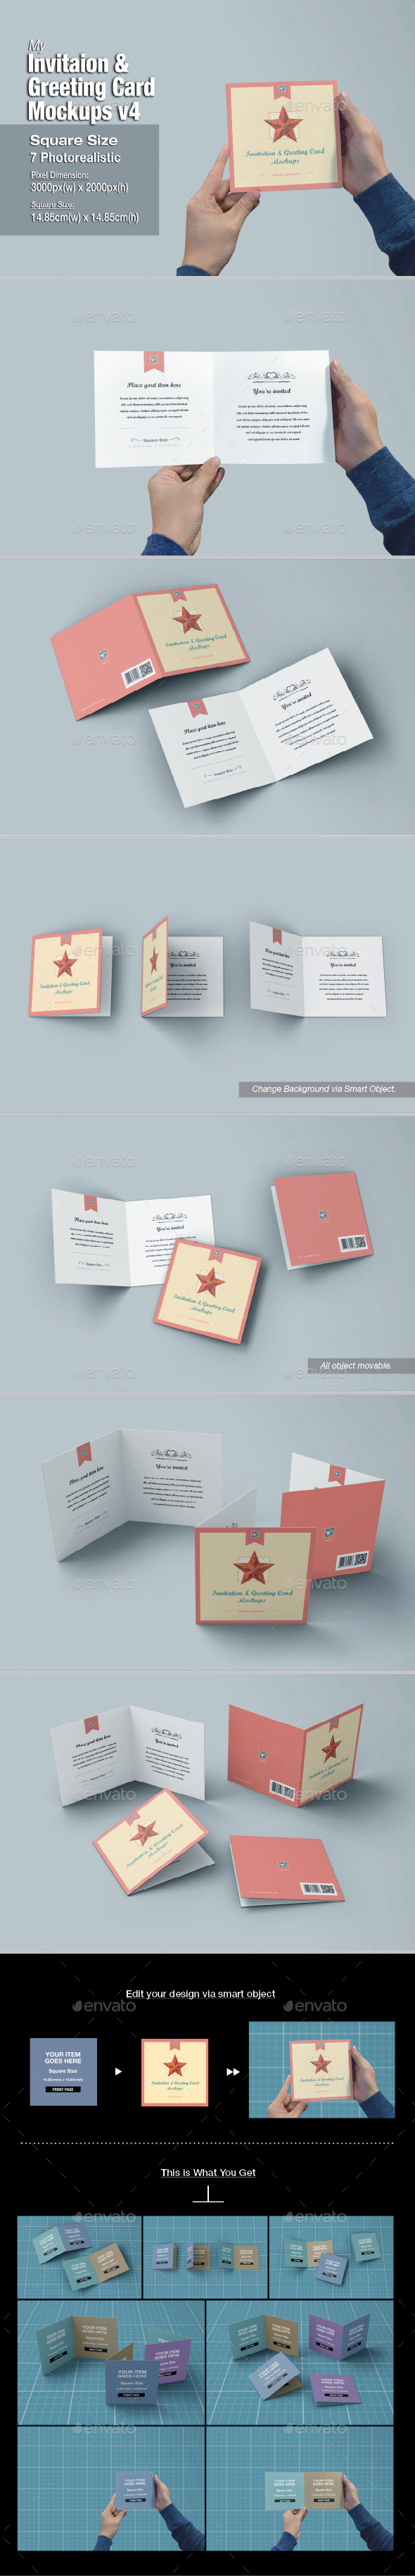 GraphicRiver myGreeting Card Mock-up v4 10988592